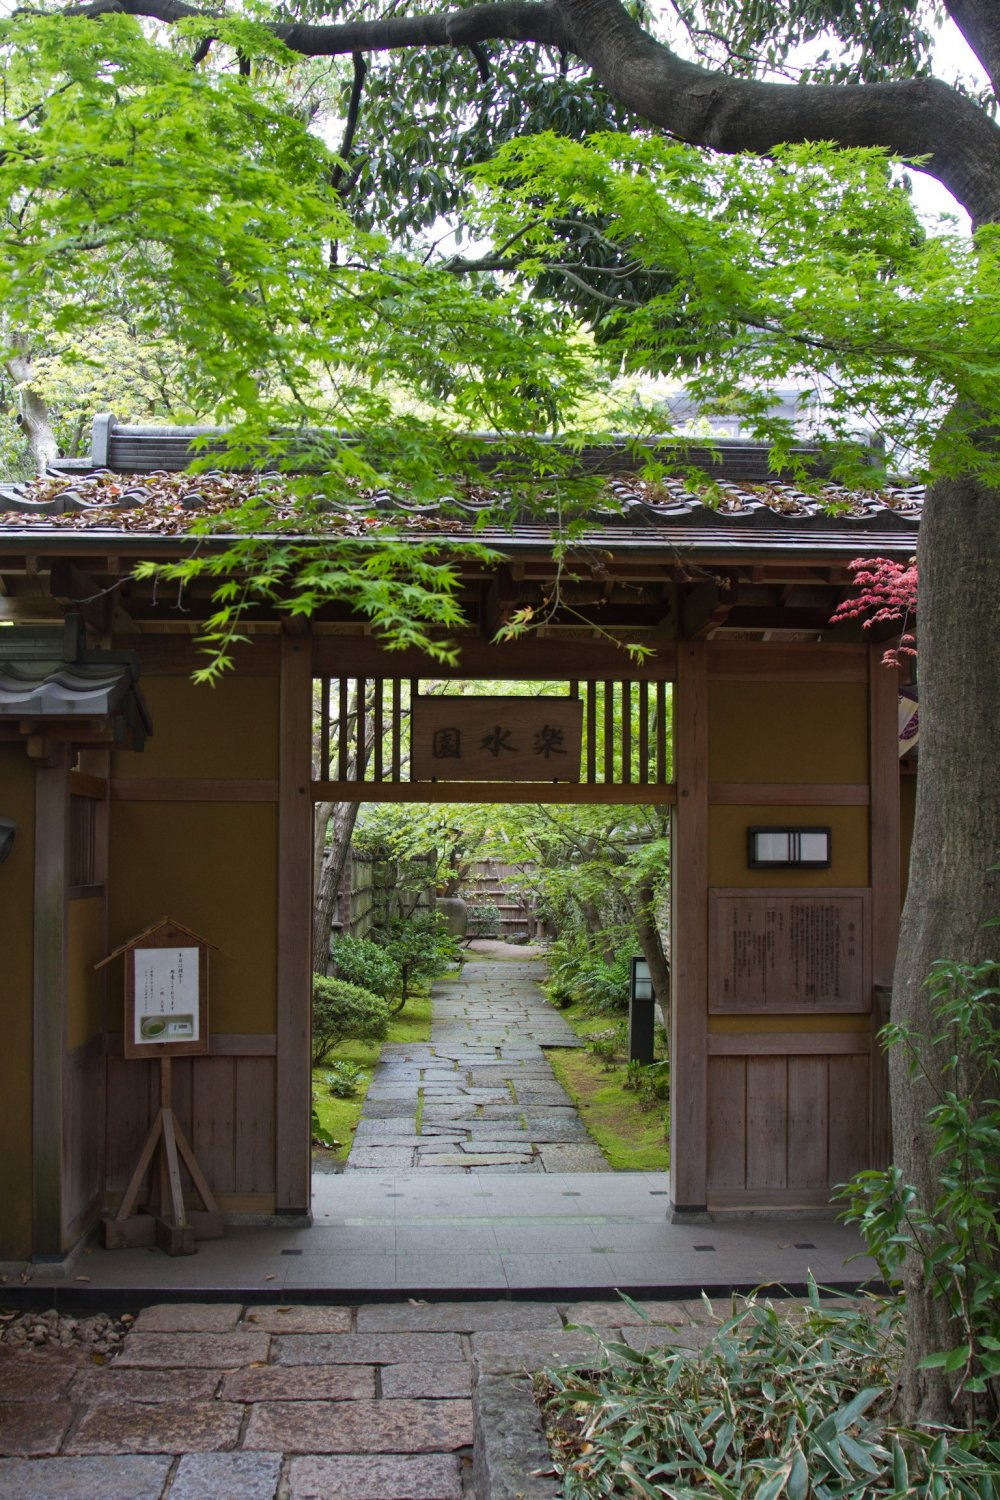 The modest entrance to Rakusui-en